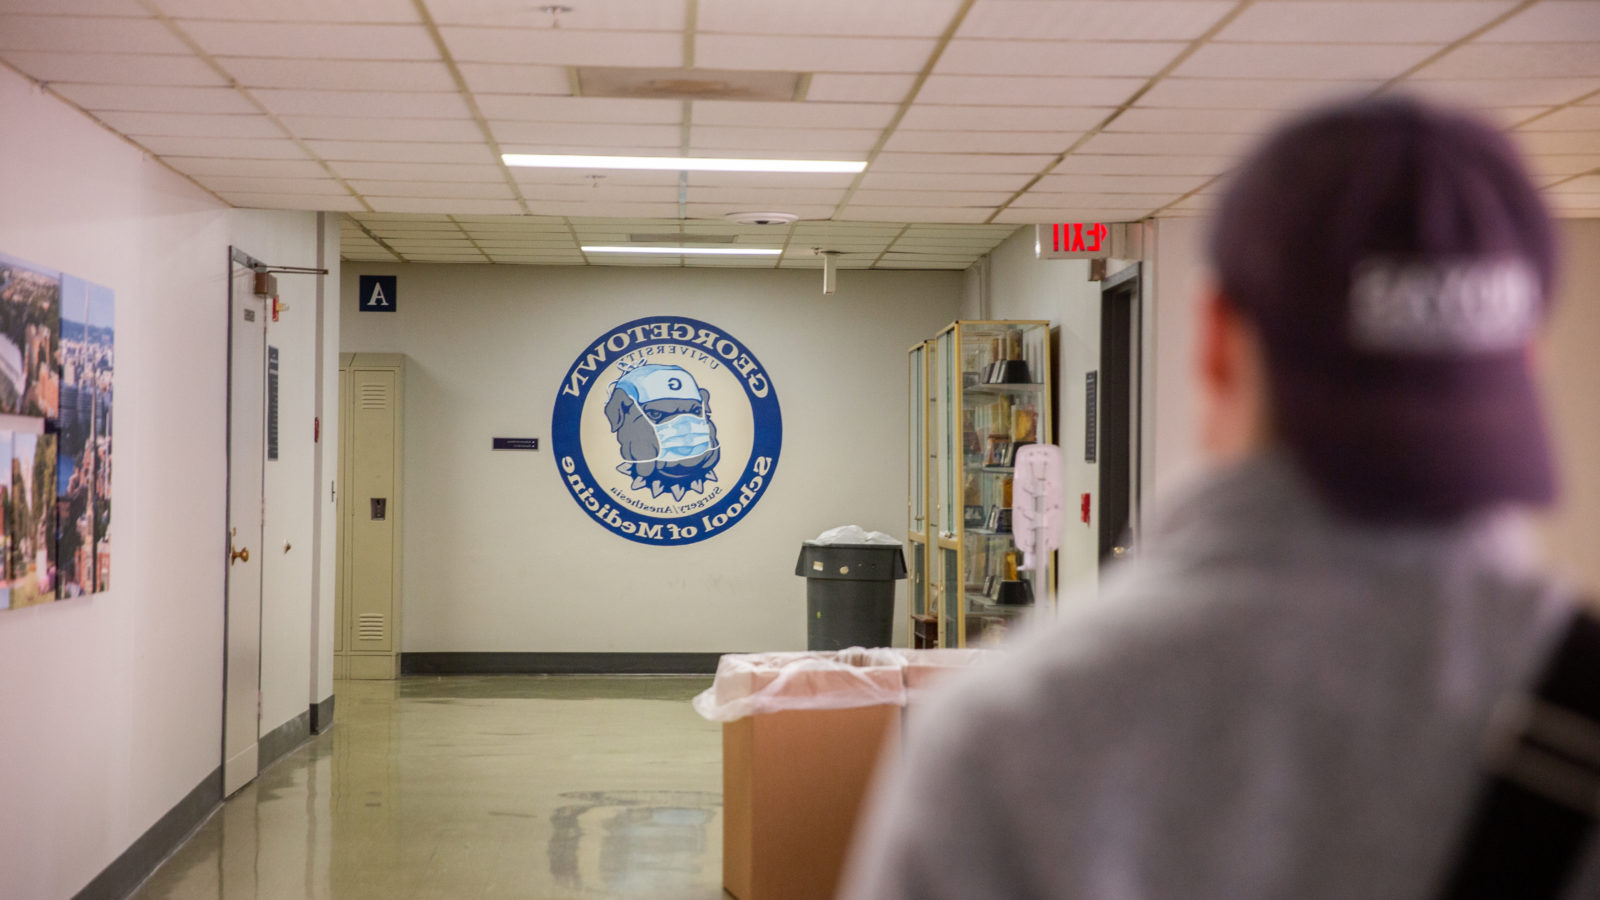 A student with a blue hat on backwards walks down a hallway, at the end of which a logo for the School of Medicine is painted on the wall.